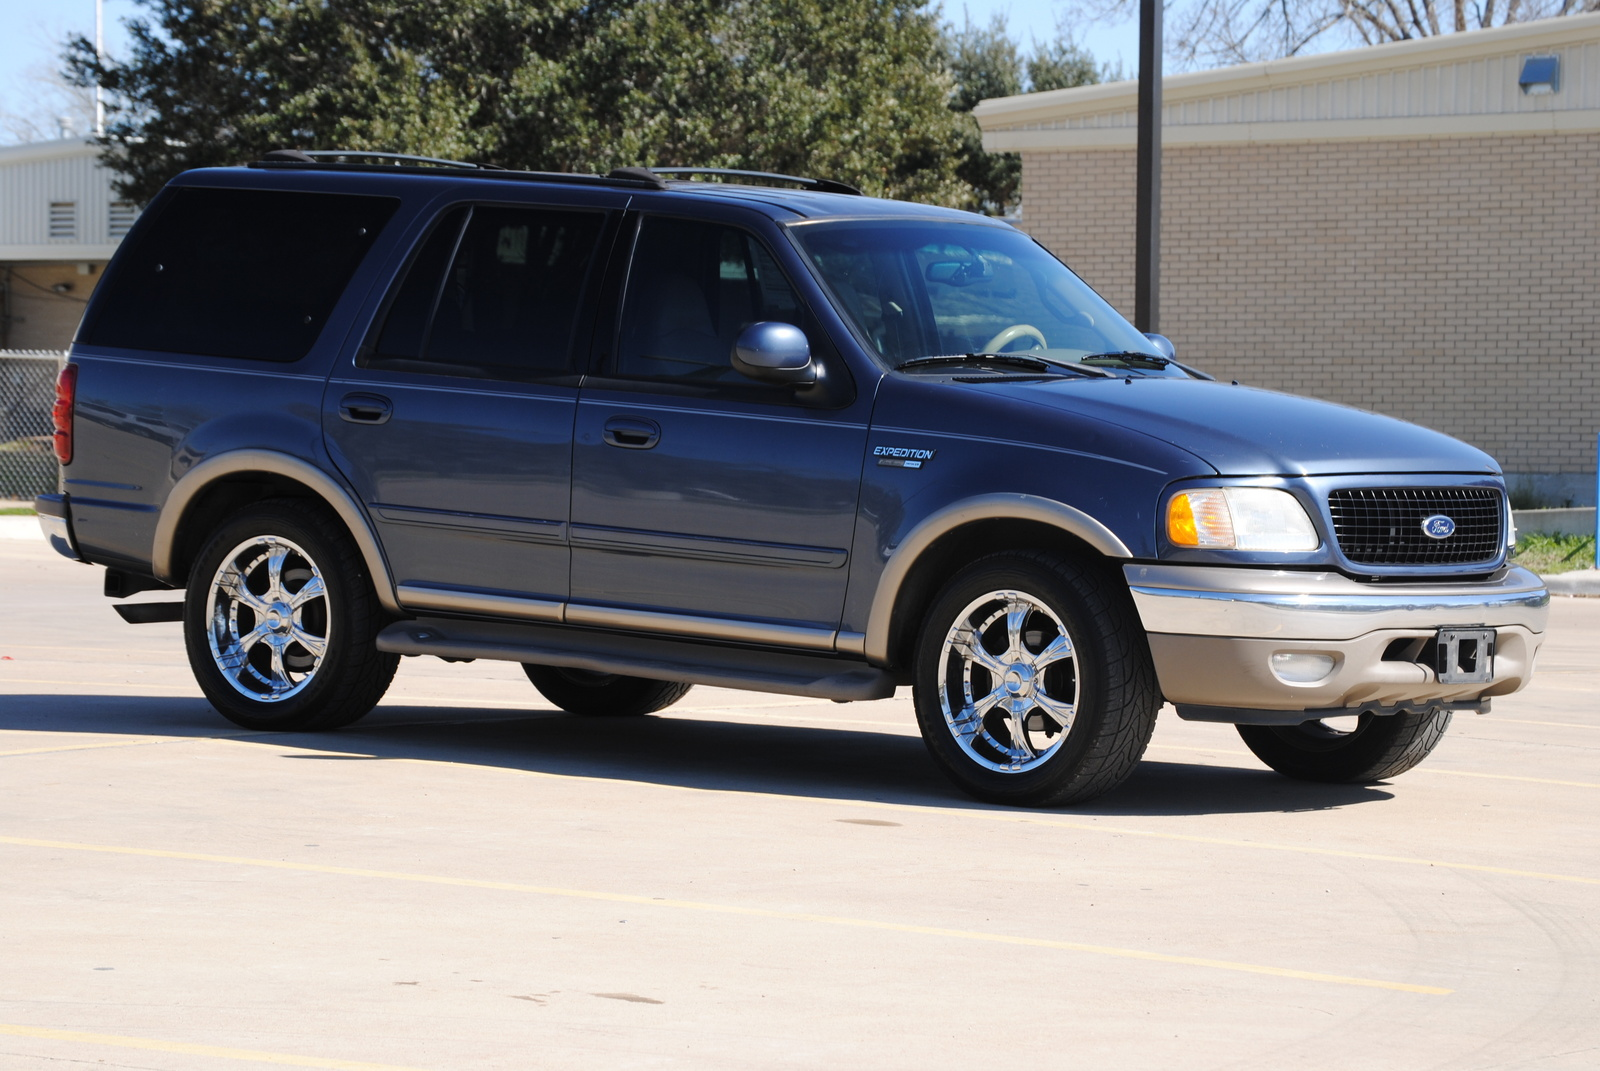 Ford Expedition 2002 foto - 2